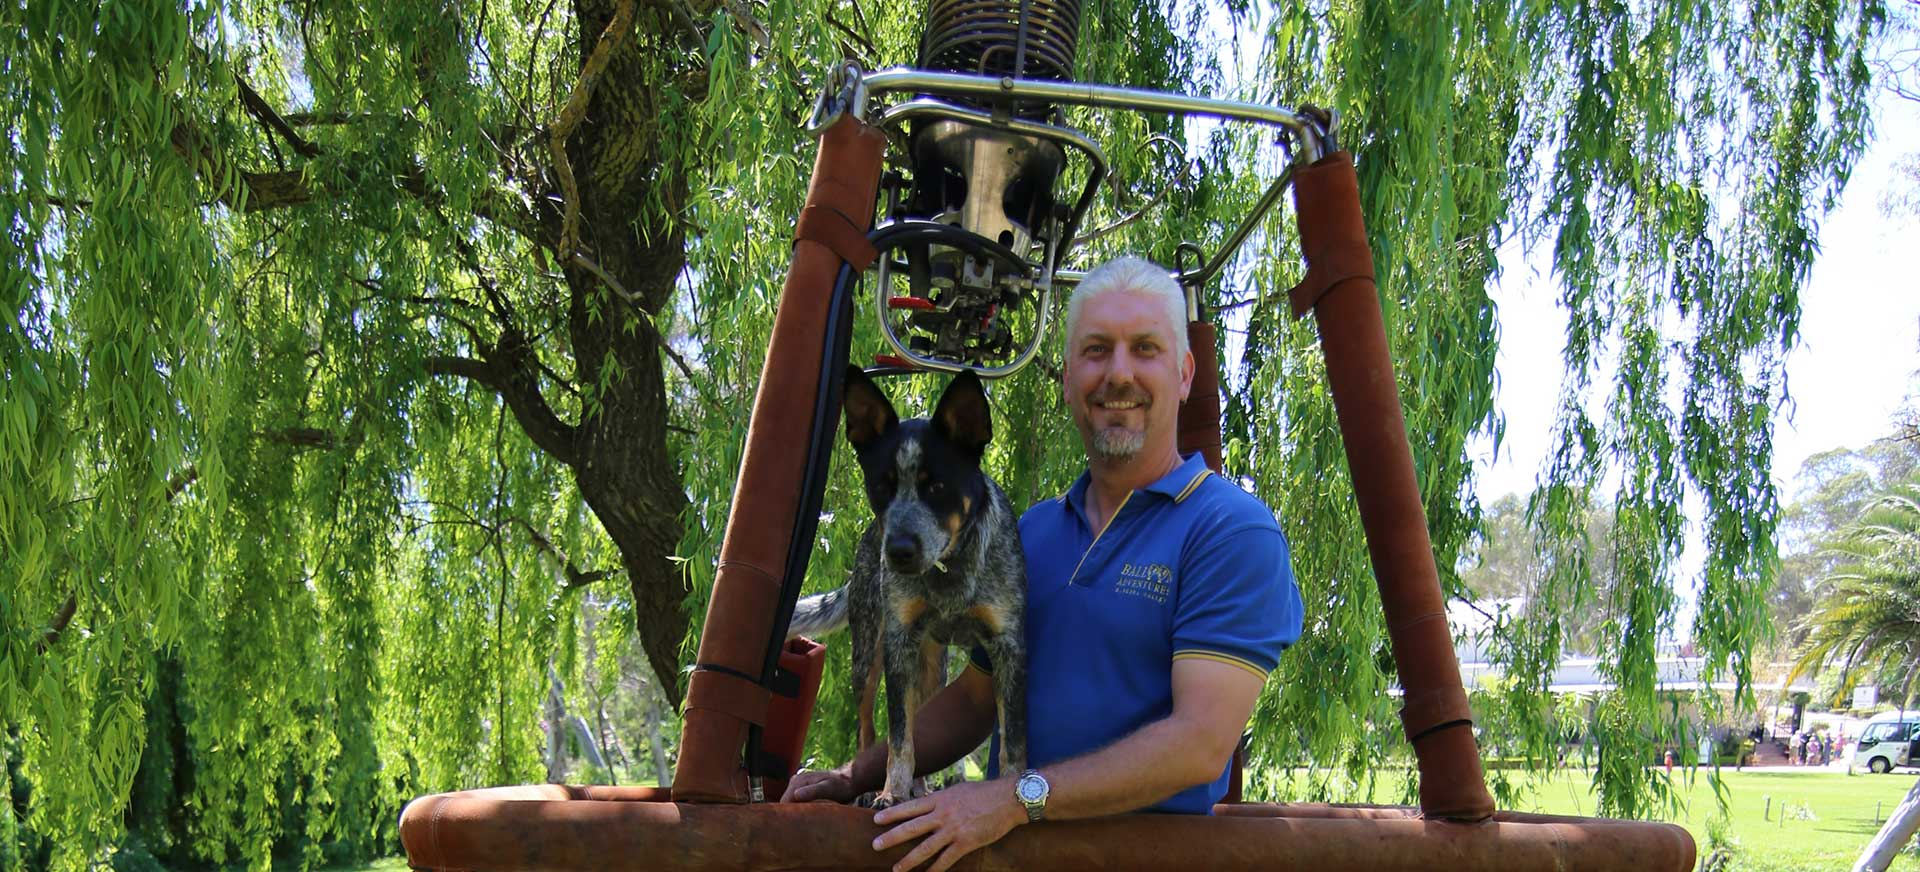 balloon-adventures-hot-air-balloon-flights-chief-pilot-and-dog-gibson-and-family